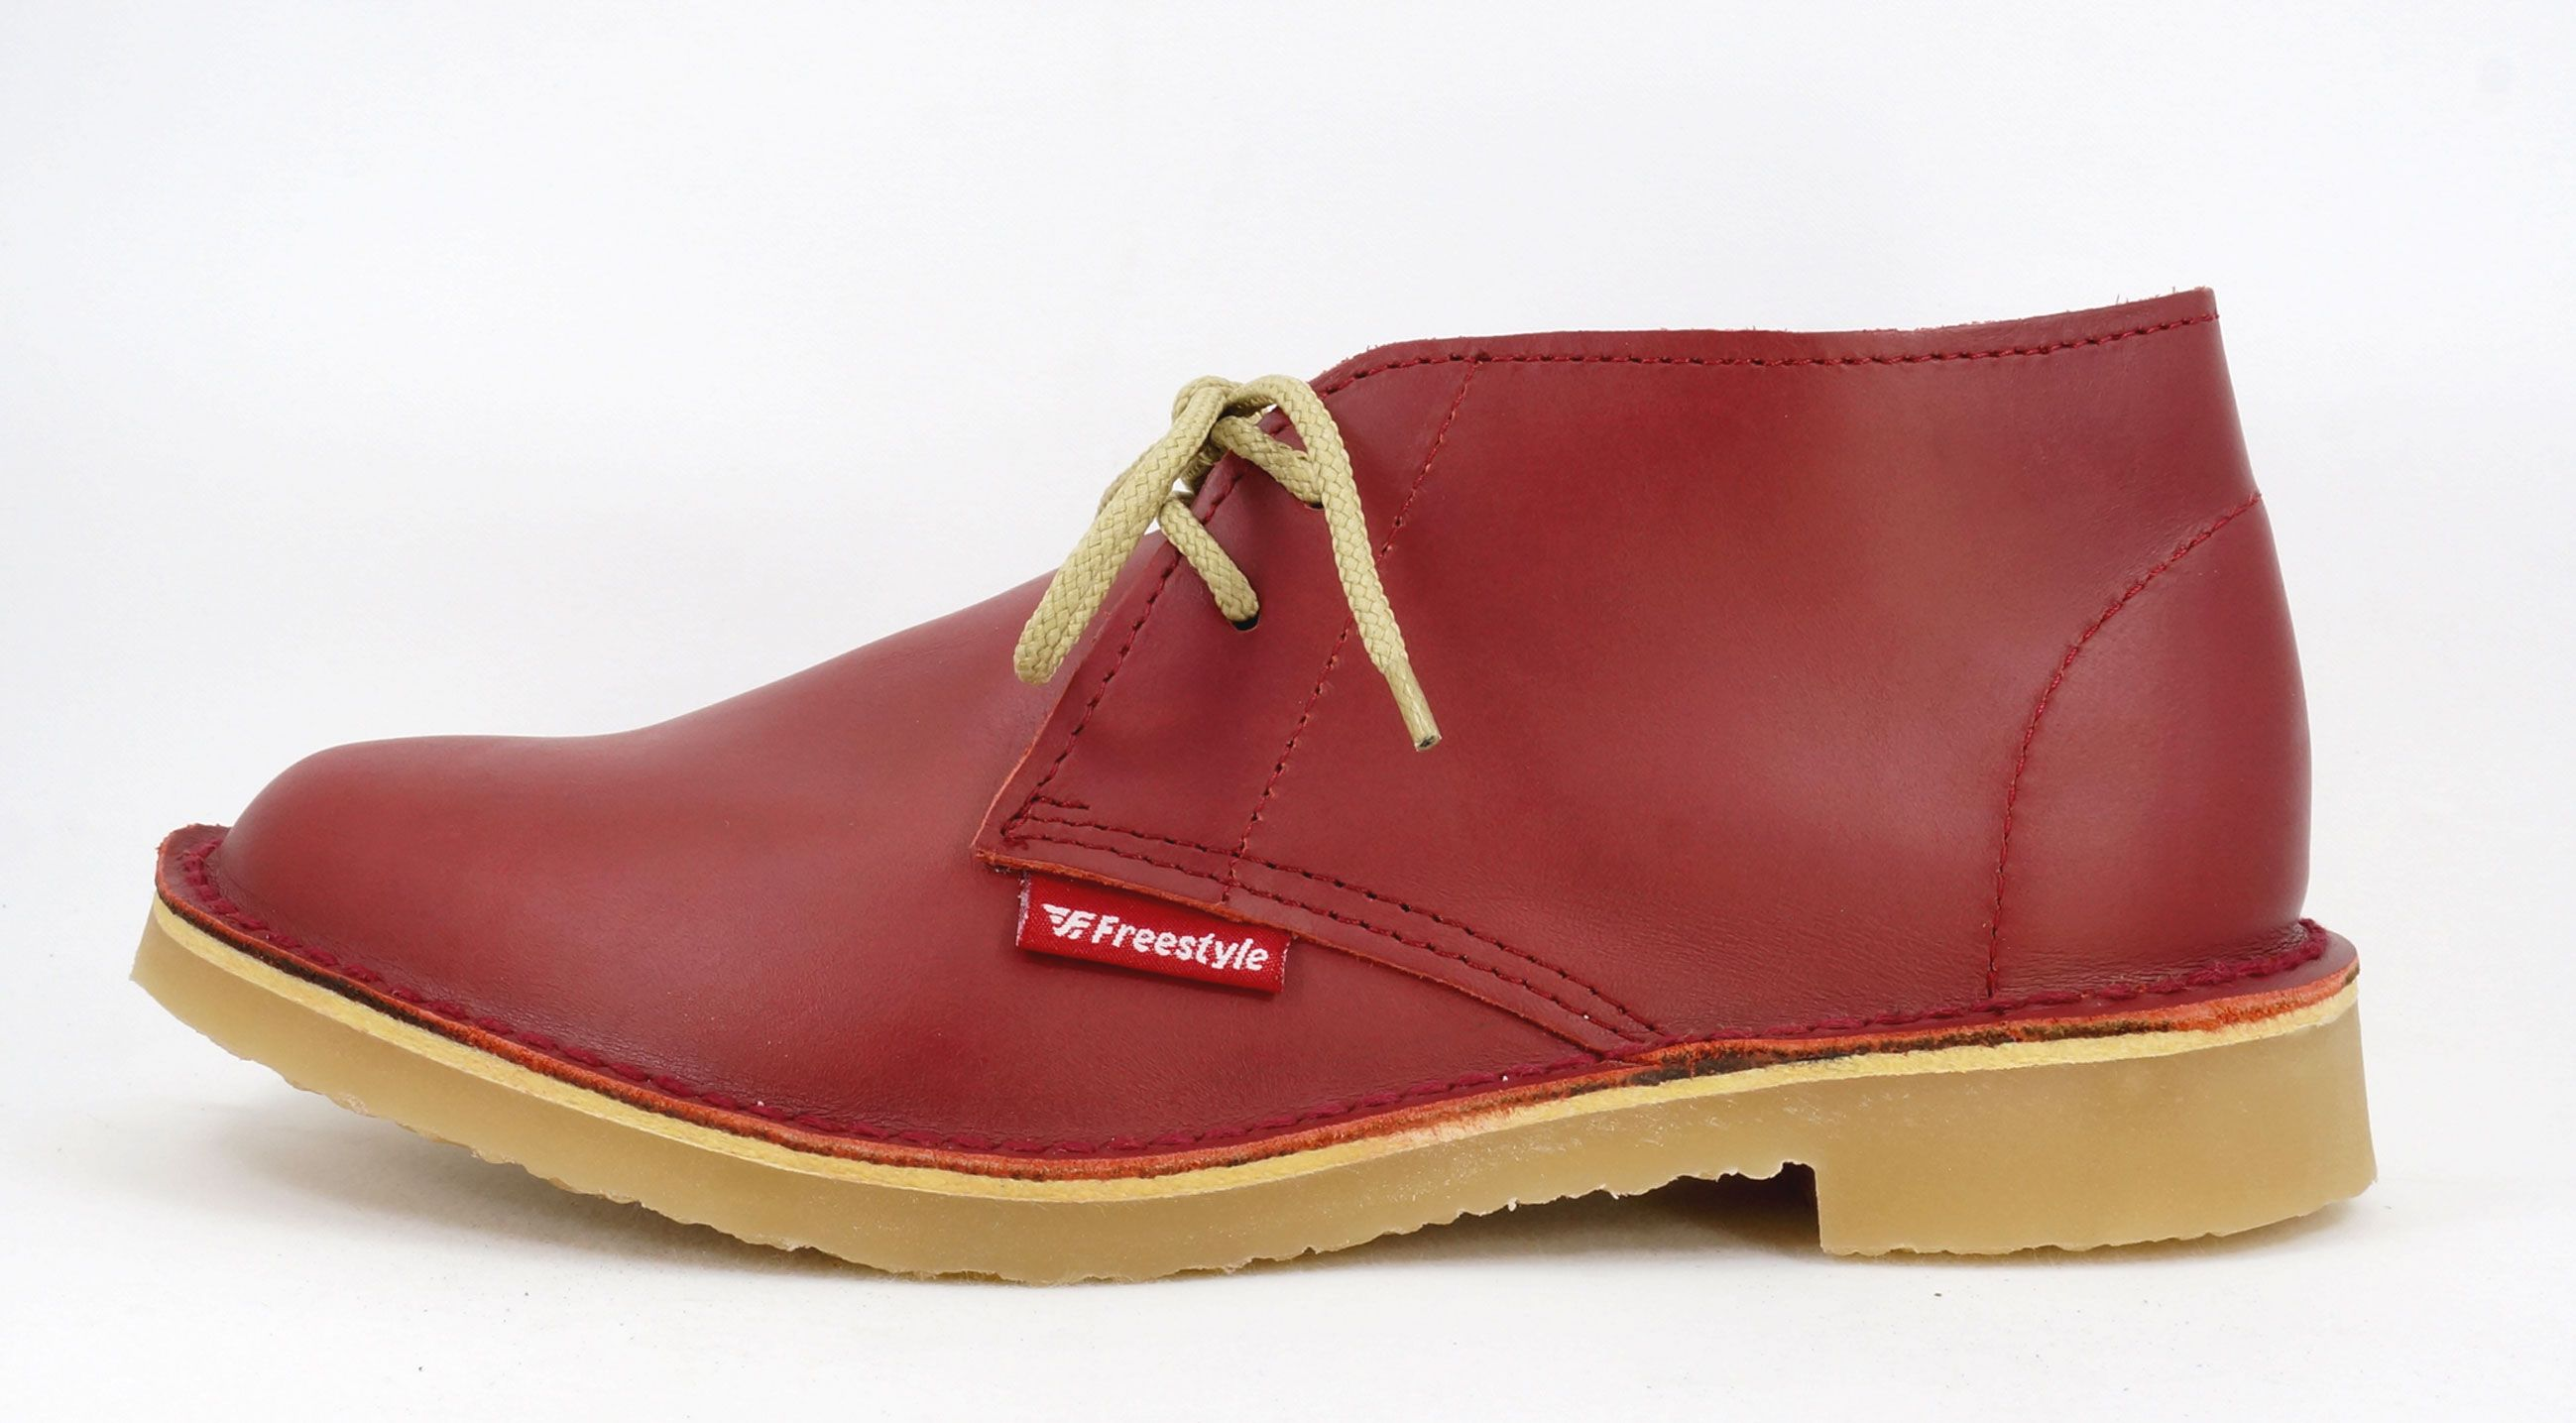 Freestyle Gristle Red Handcrafted Genuine Leather Vellie Hunter Unisex Leather Shoes Woman Leather Genuine Suede